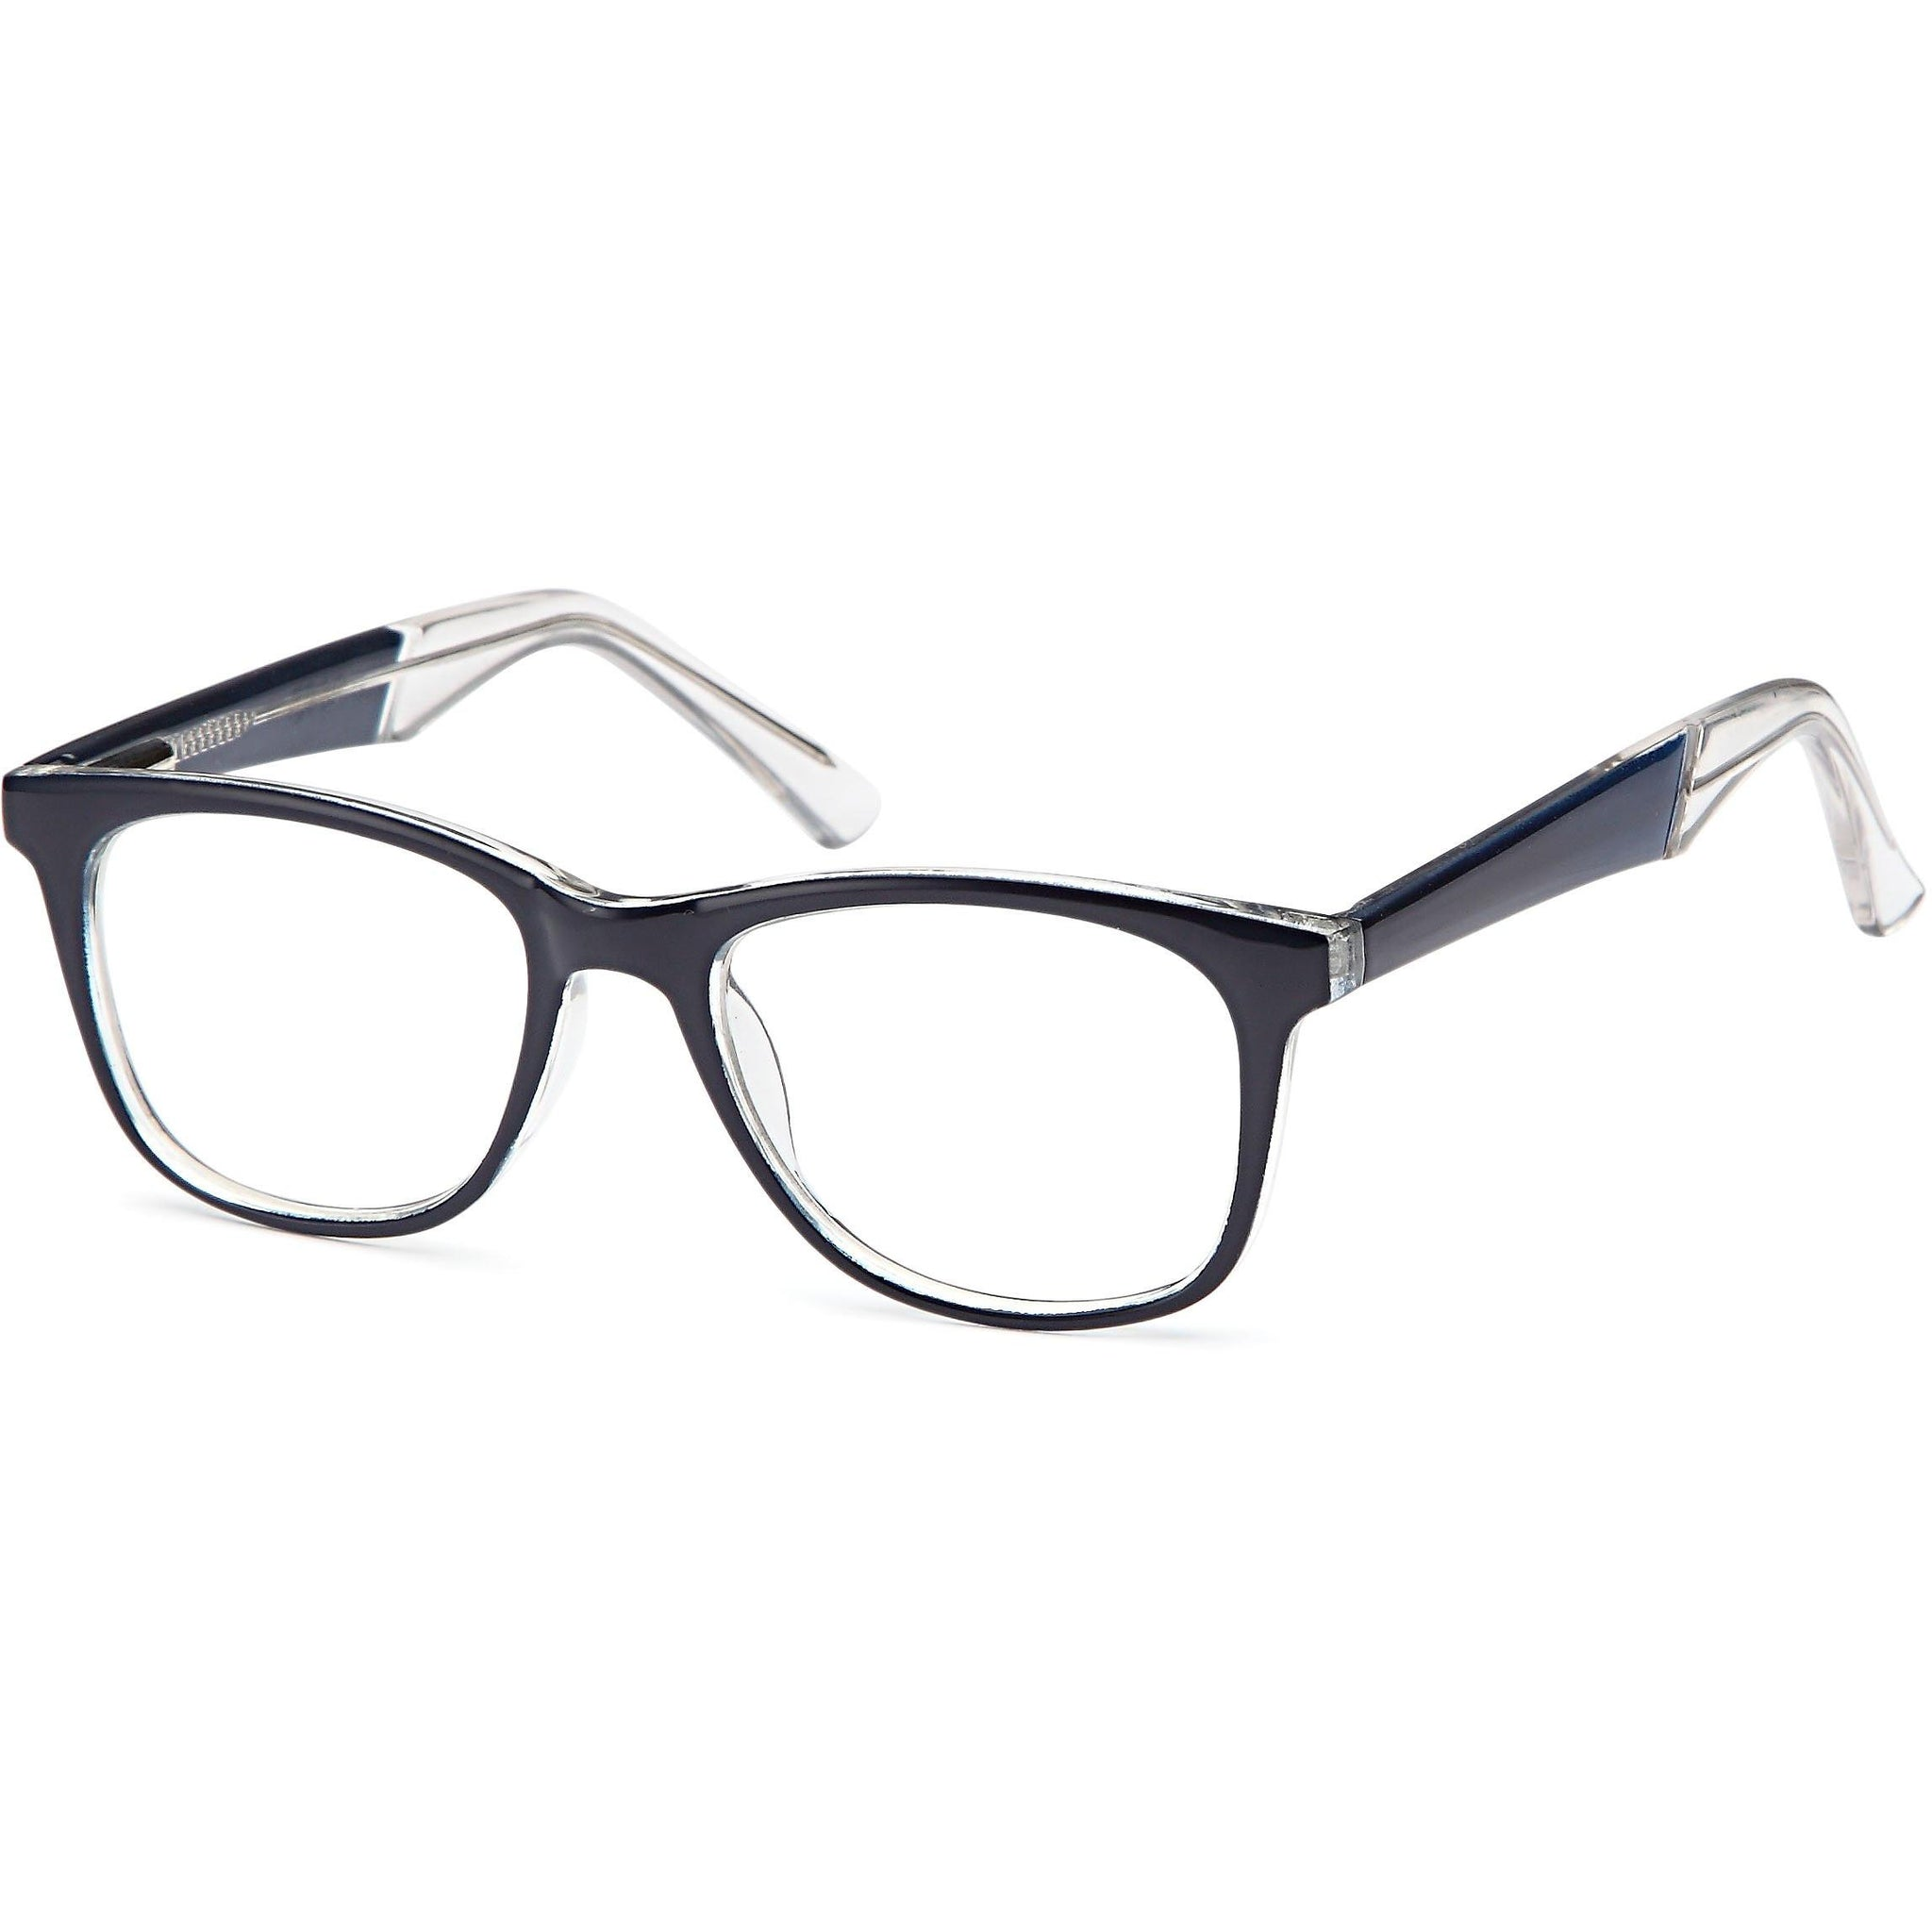 Albie by The Square Mile Juniors Eyeglasses Prescriptions Available - timetoshade